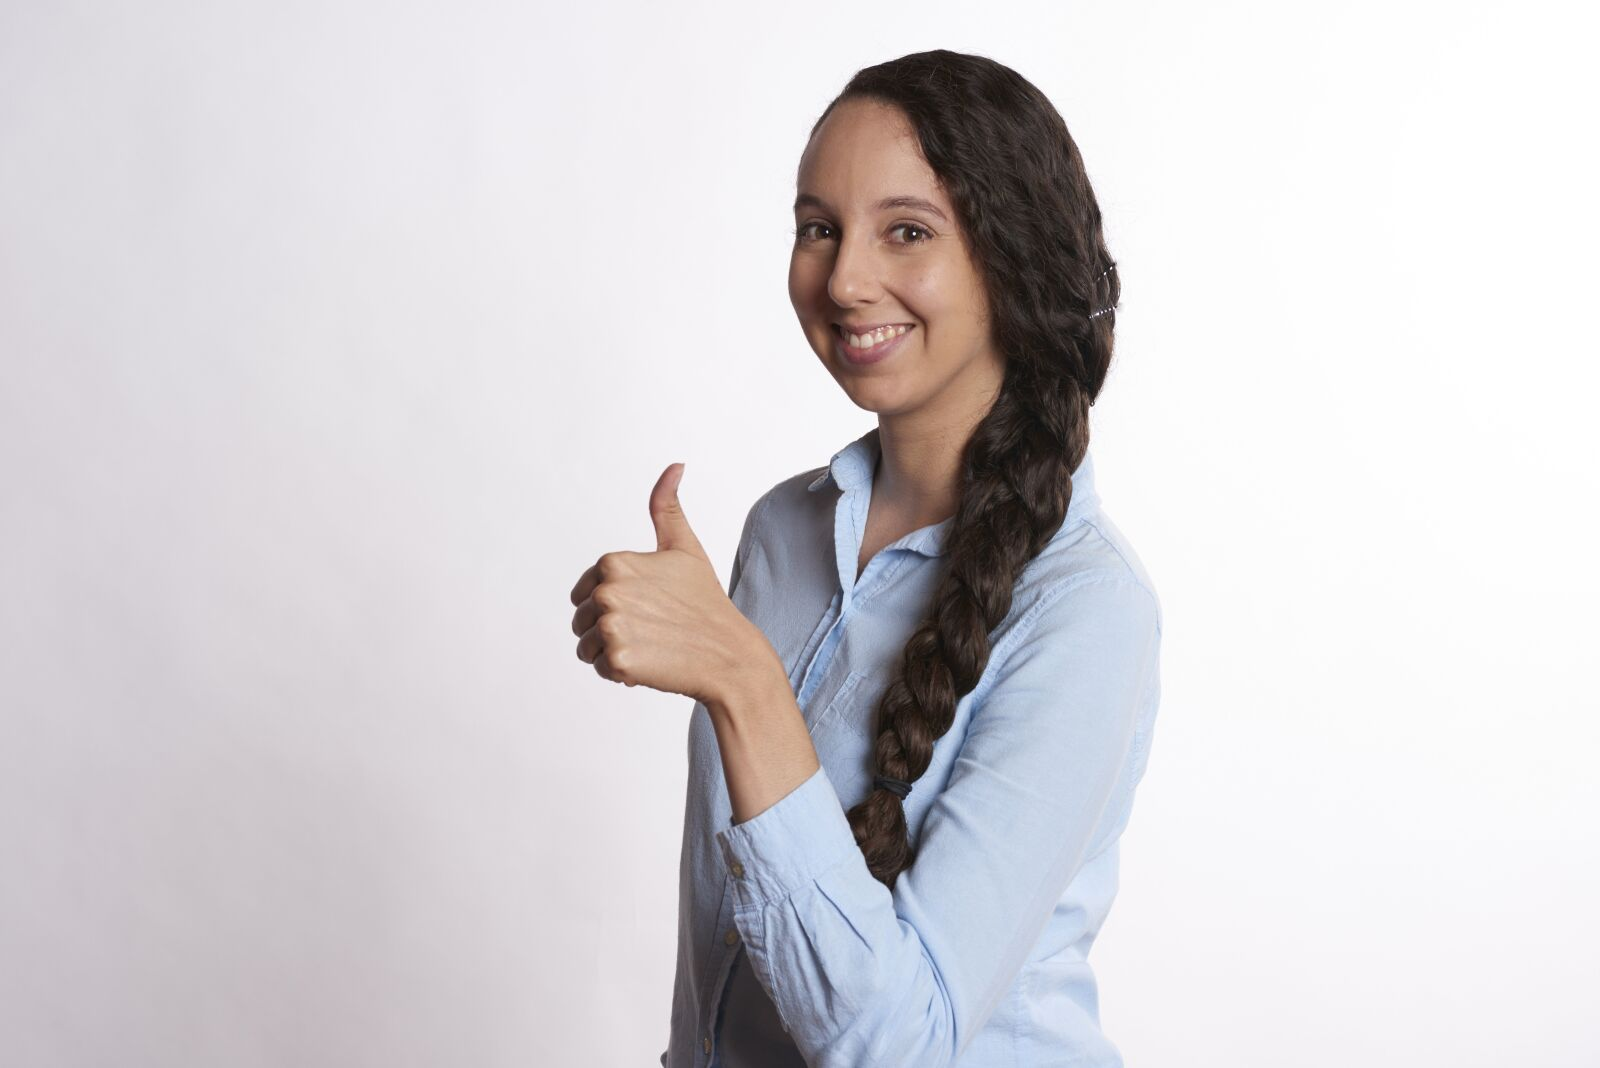 woman, thumbs up, smiling photography